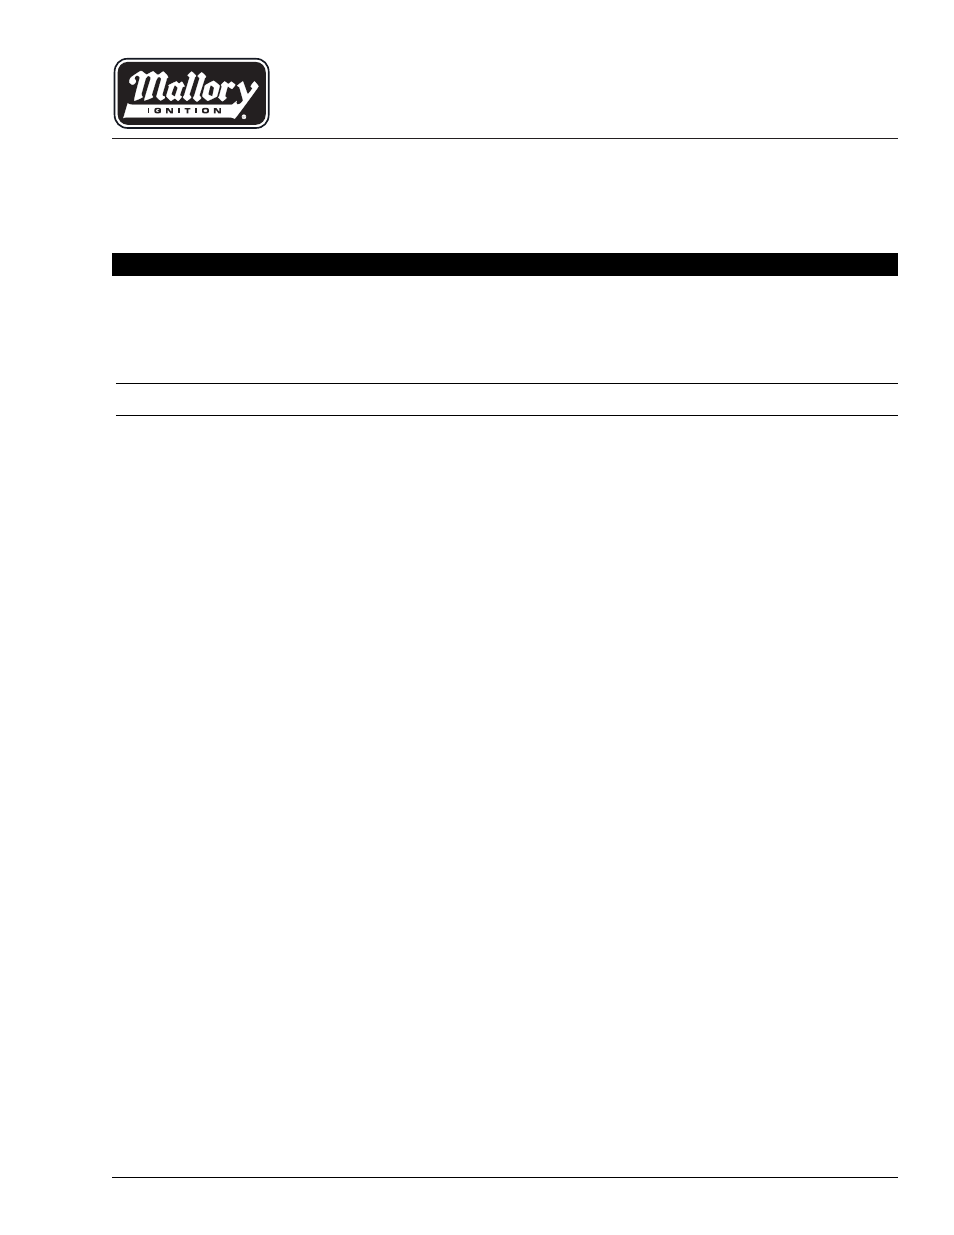 mallory ignition mallory unilite distributor page1 mallory unilite wiring diagram mallory unilite module wiring diagram at sewacar.co